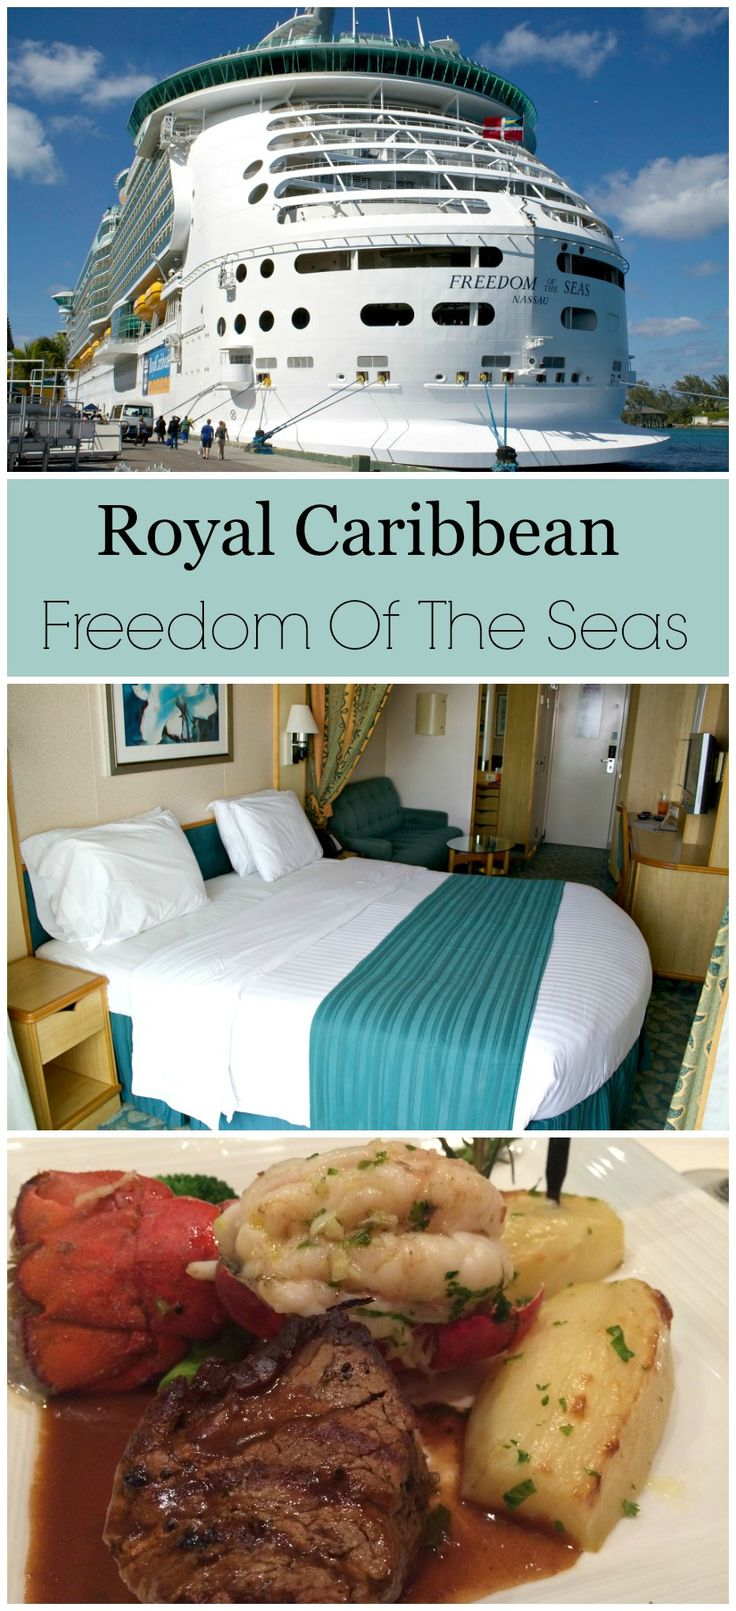 Royal Caribbean Cruise- Freedom of The Seas Ship Review. This ship was recently renovated and be had an amazing vacation. I highly recommend this cruise ship.